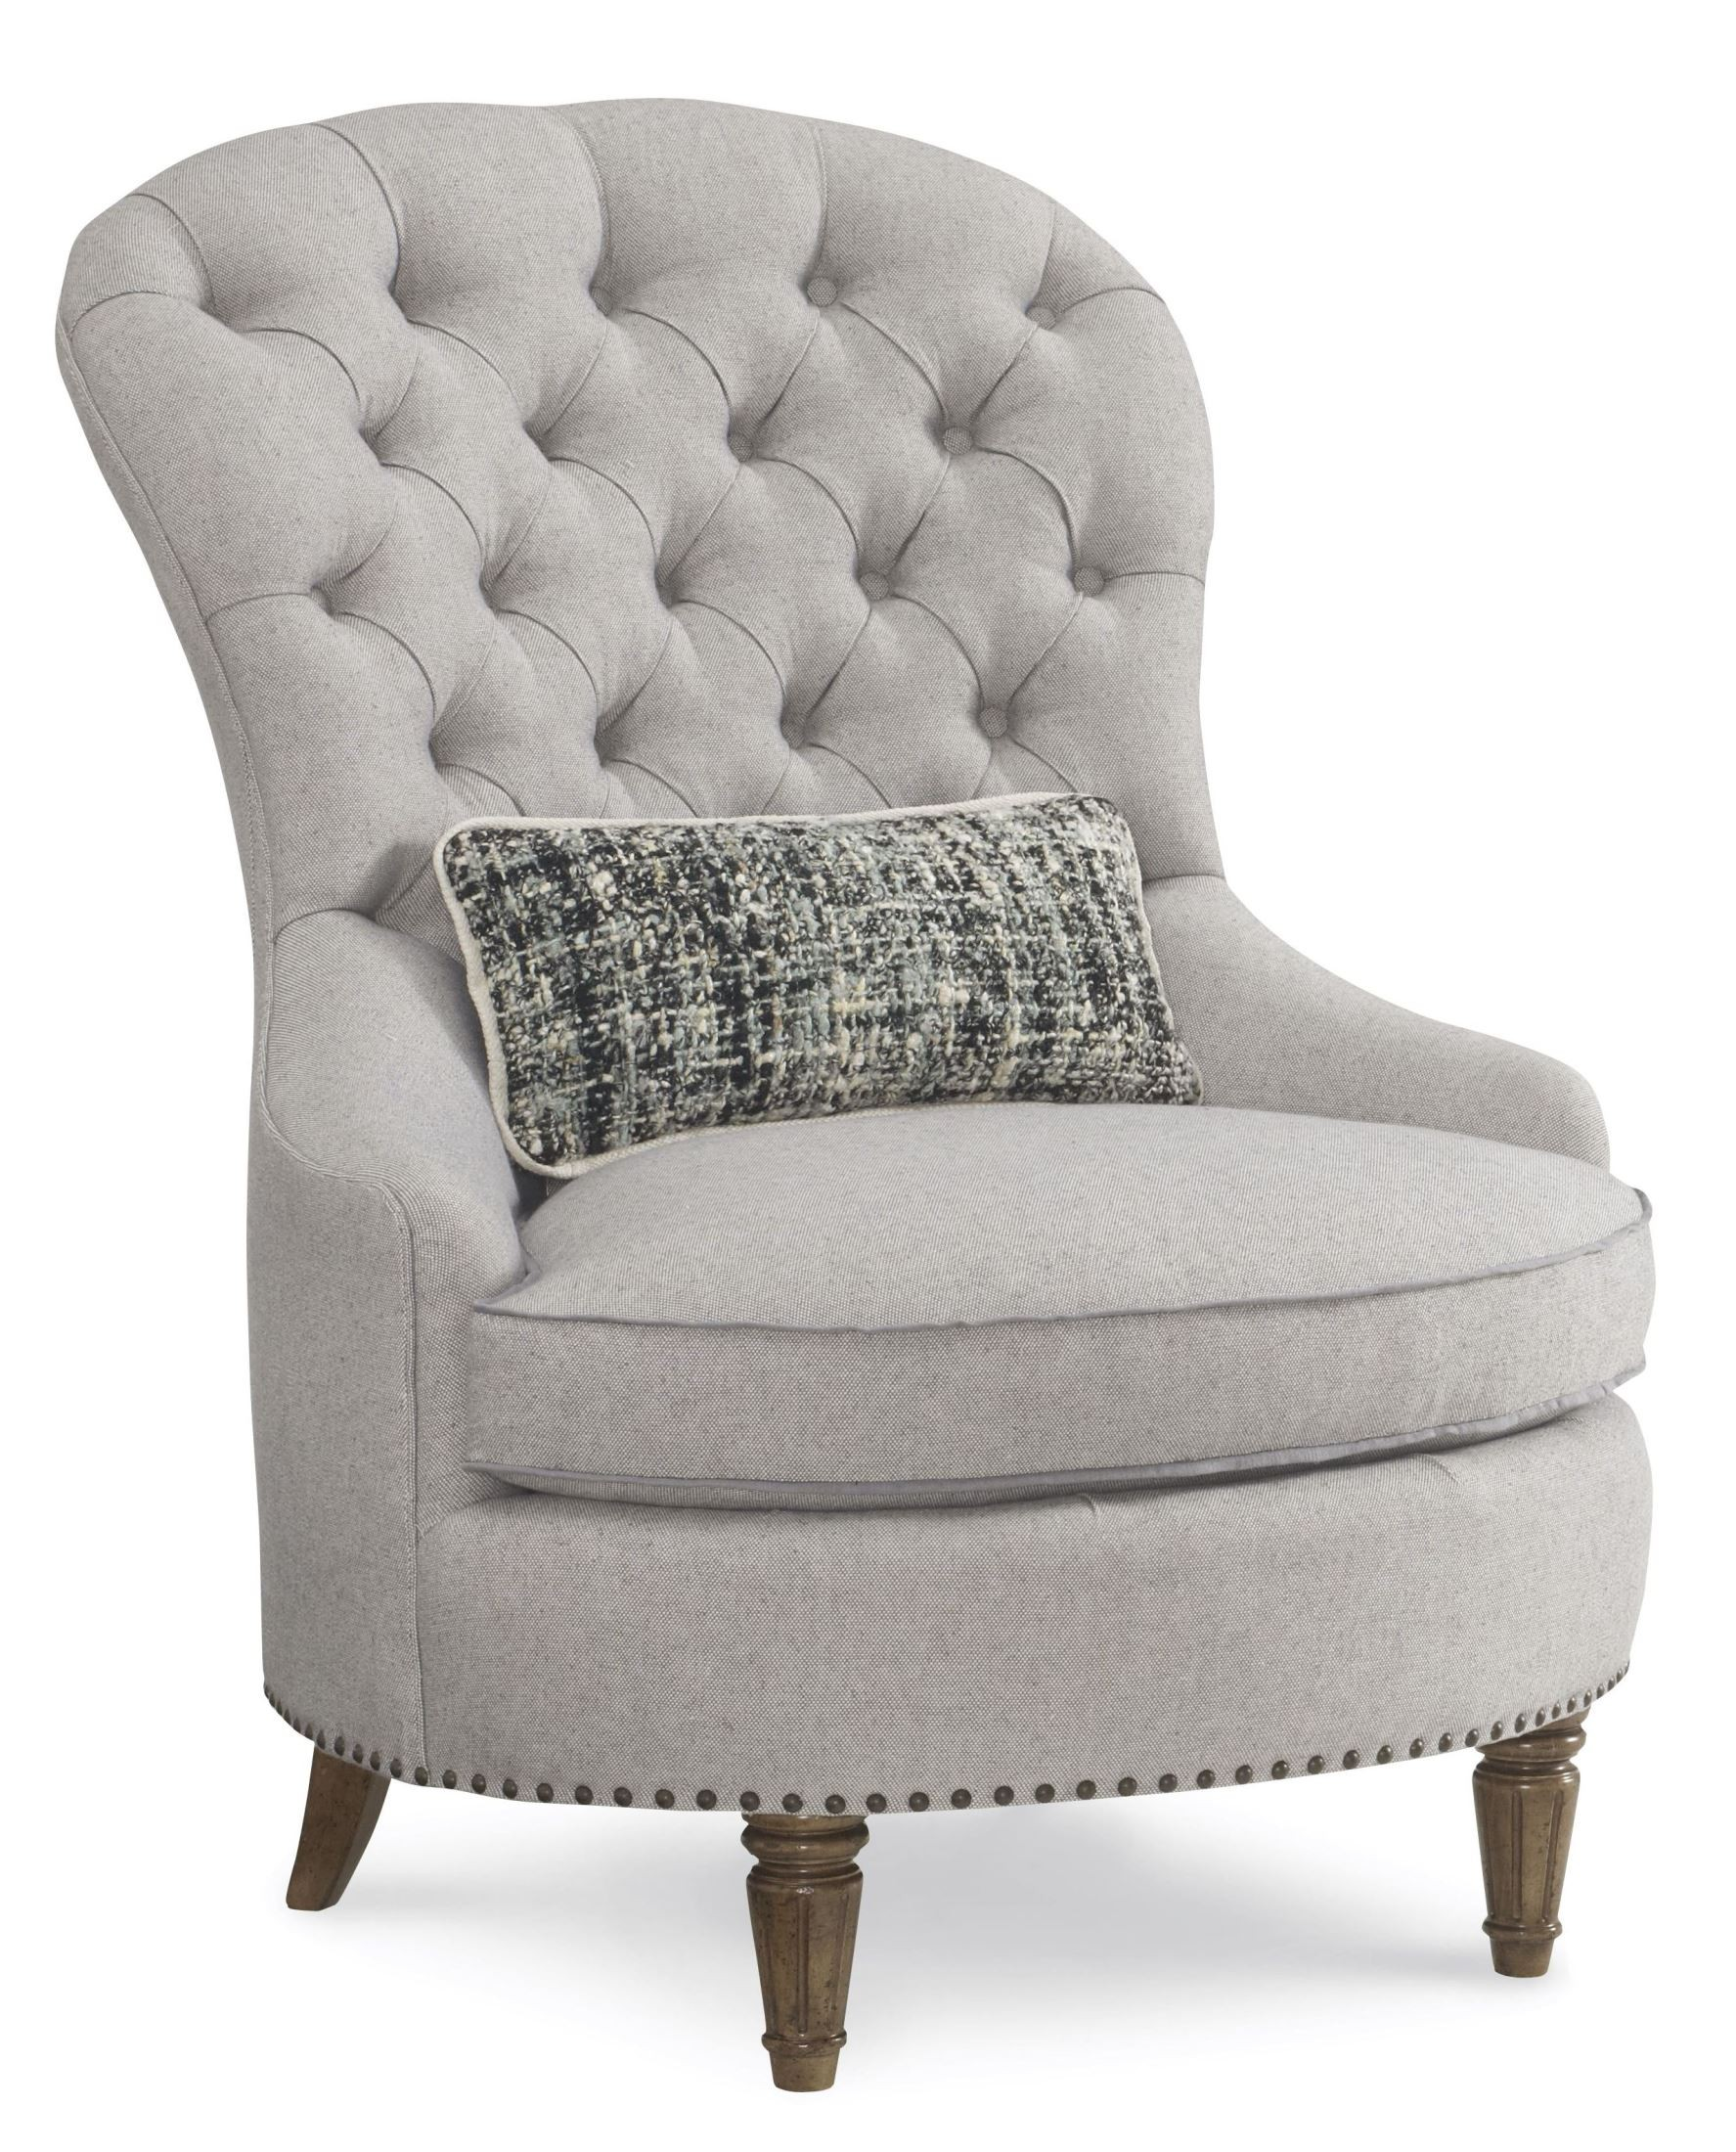 tufted accent chairs chair covers and sashes for cheap collection one upholstered christiansen